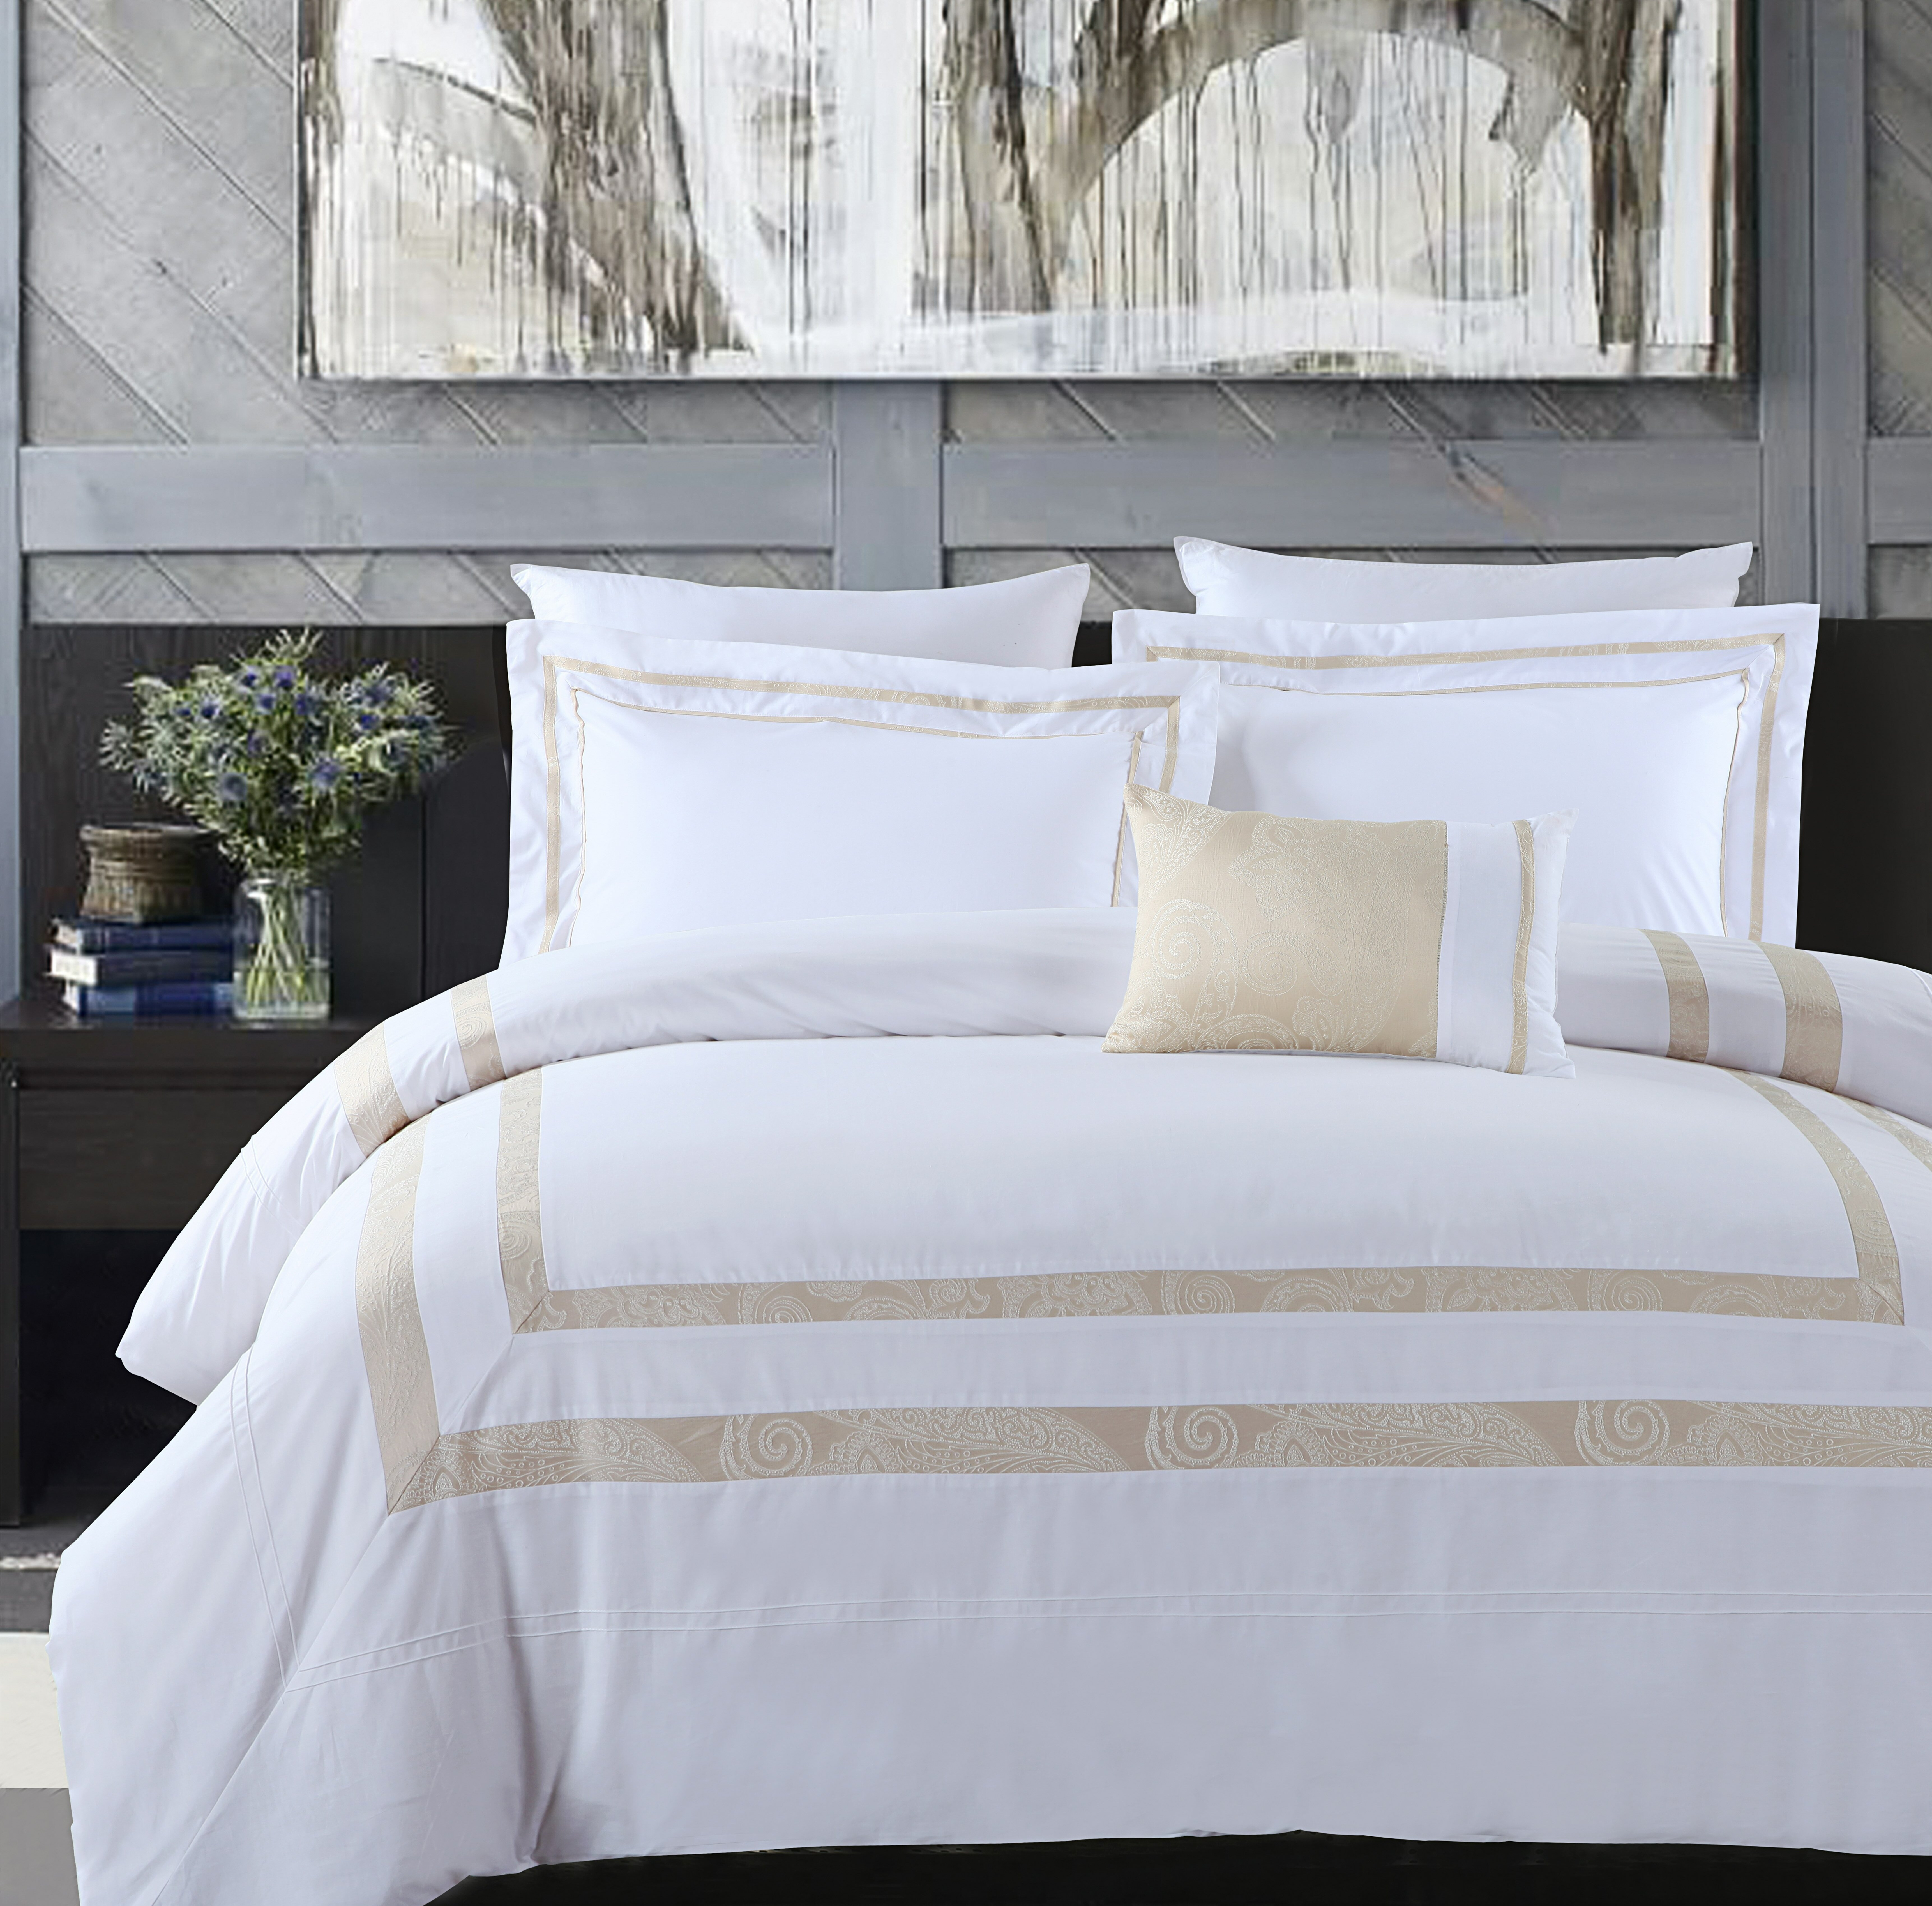 size concept bedding sets comforting king goods at comfort breathtaking nautical full wayfair pictures hotel home of queen teen setscomforter york comforter j goodscomforter new